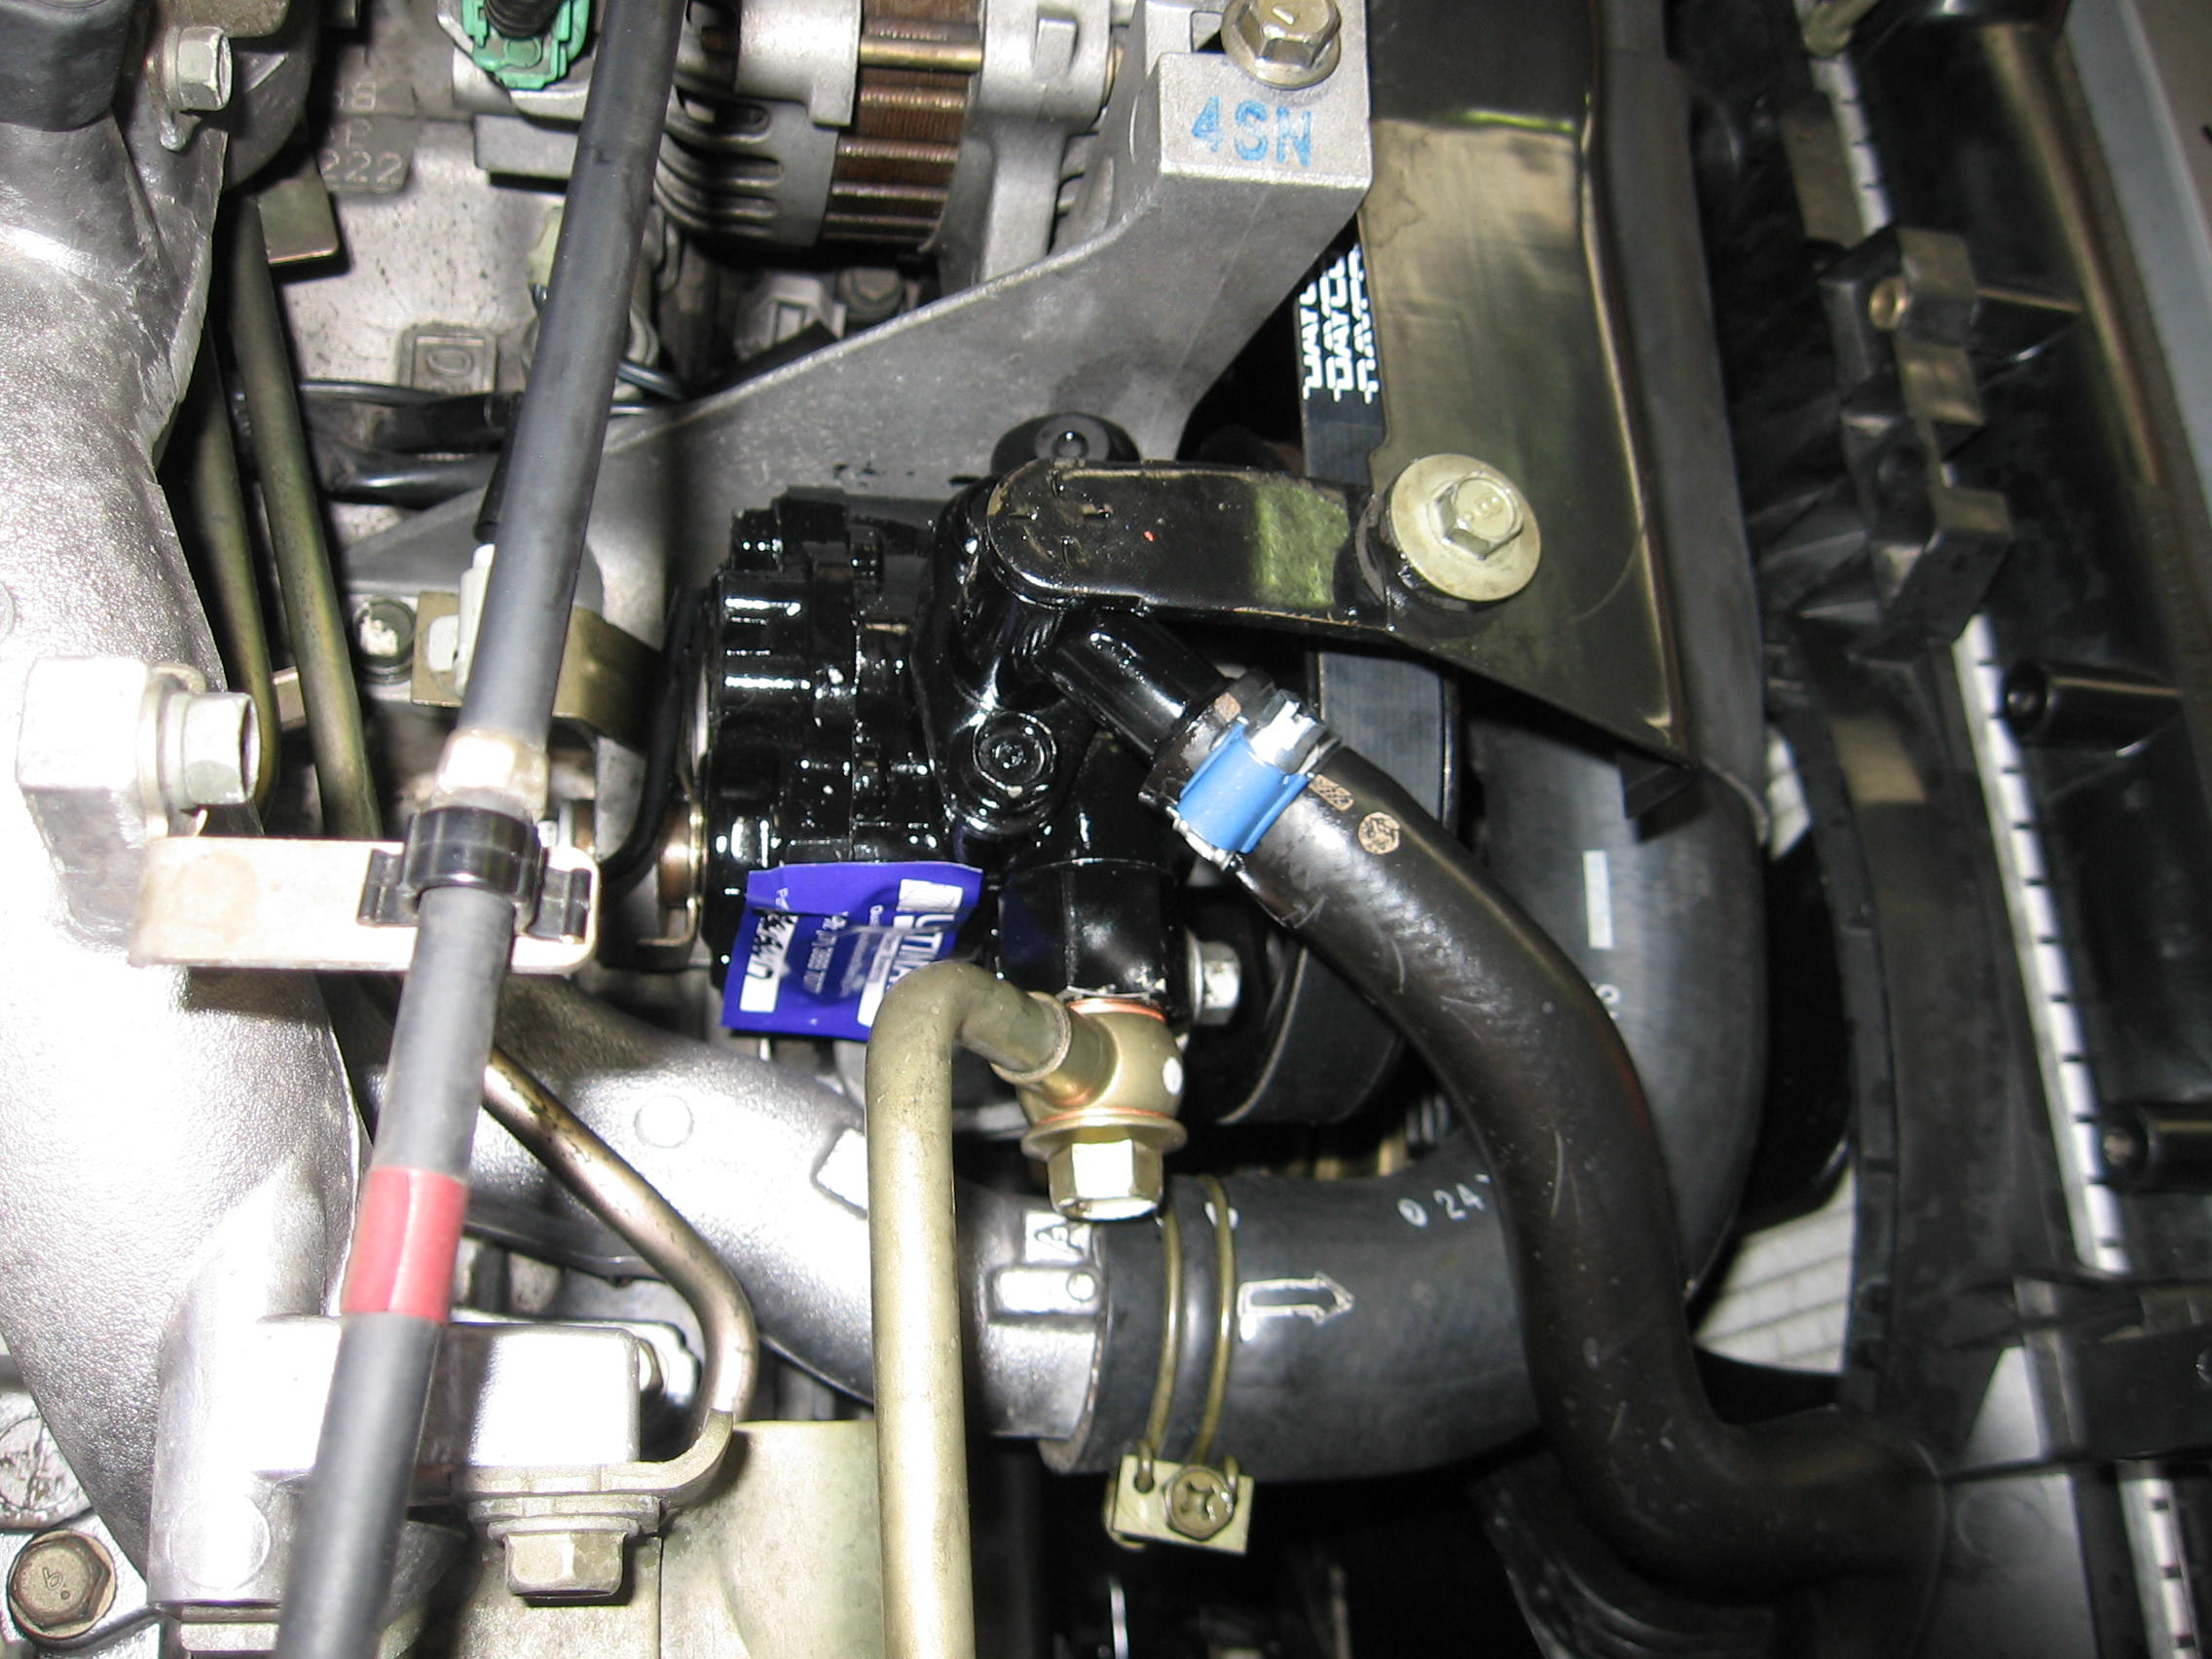 subaru-impreza-engine-bay-with-ultimate-pump-new-belt-fitted..jpg